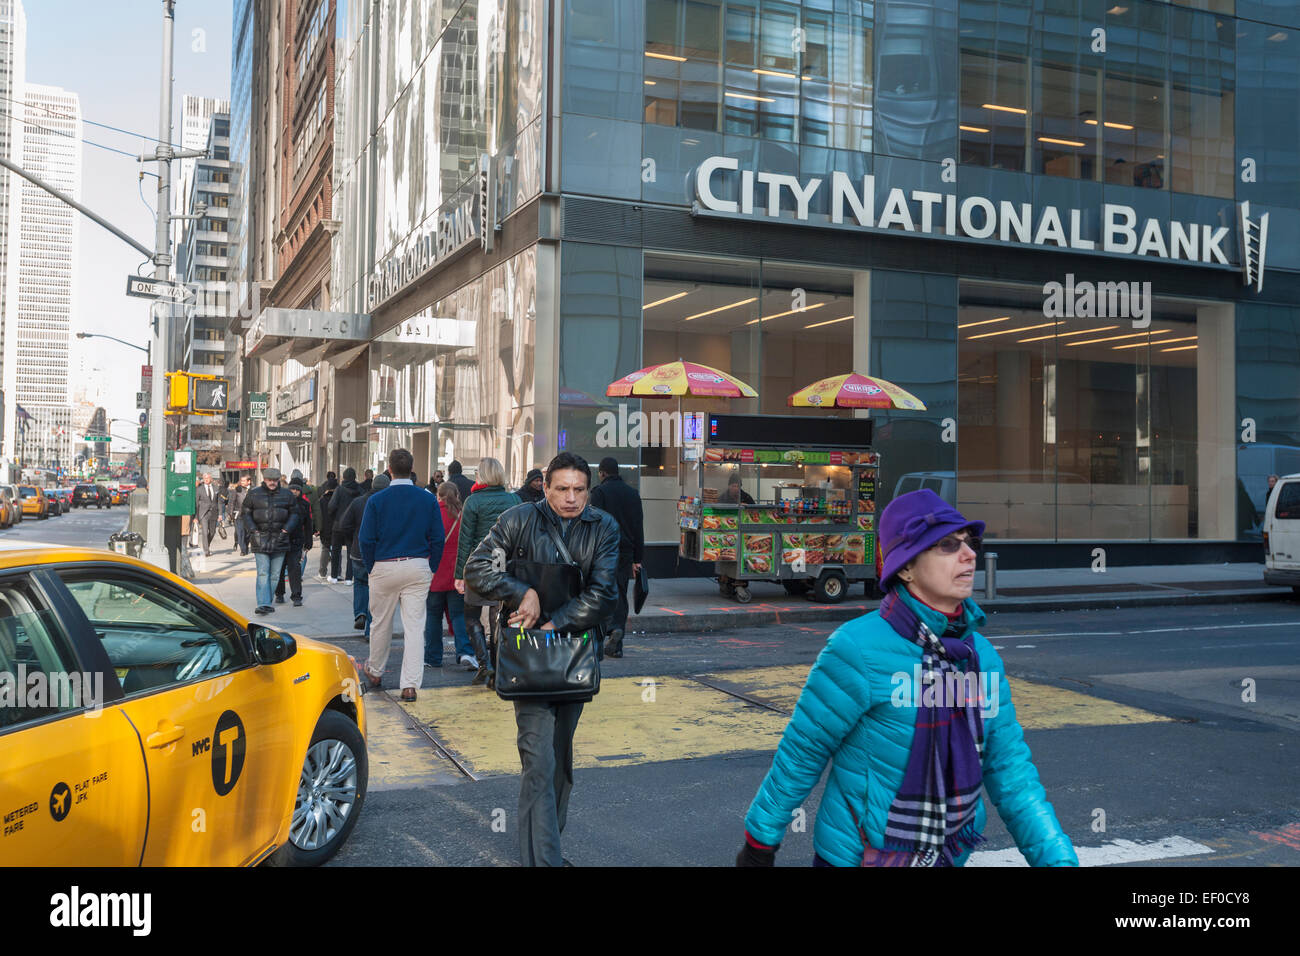 A New York branch of the Los Angeles based City National Bank in Midtown Manhattan on Friday, January 23, 2015. - Stock Image